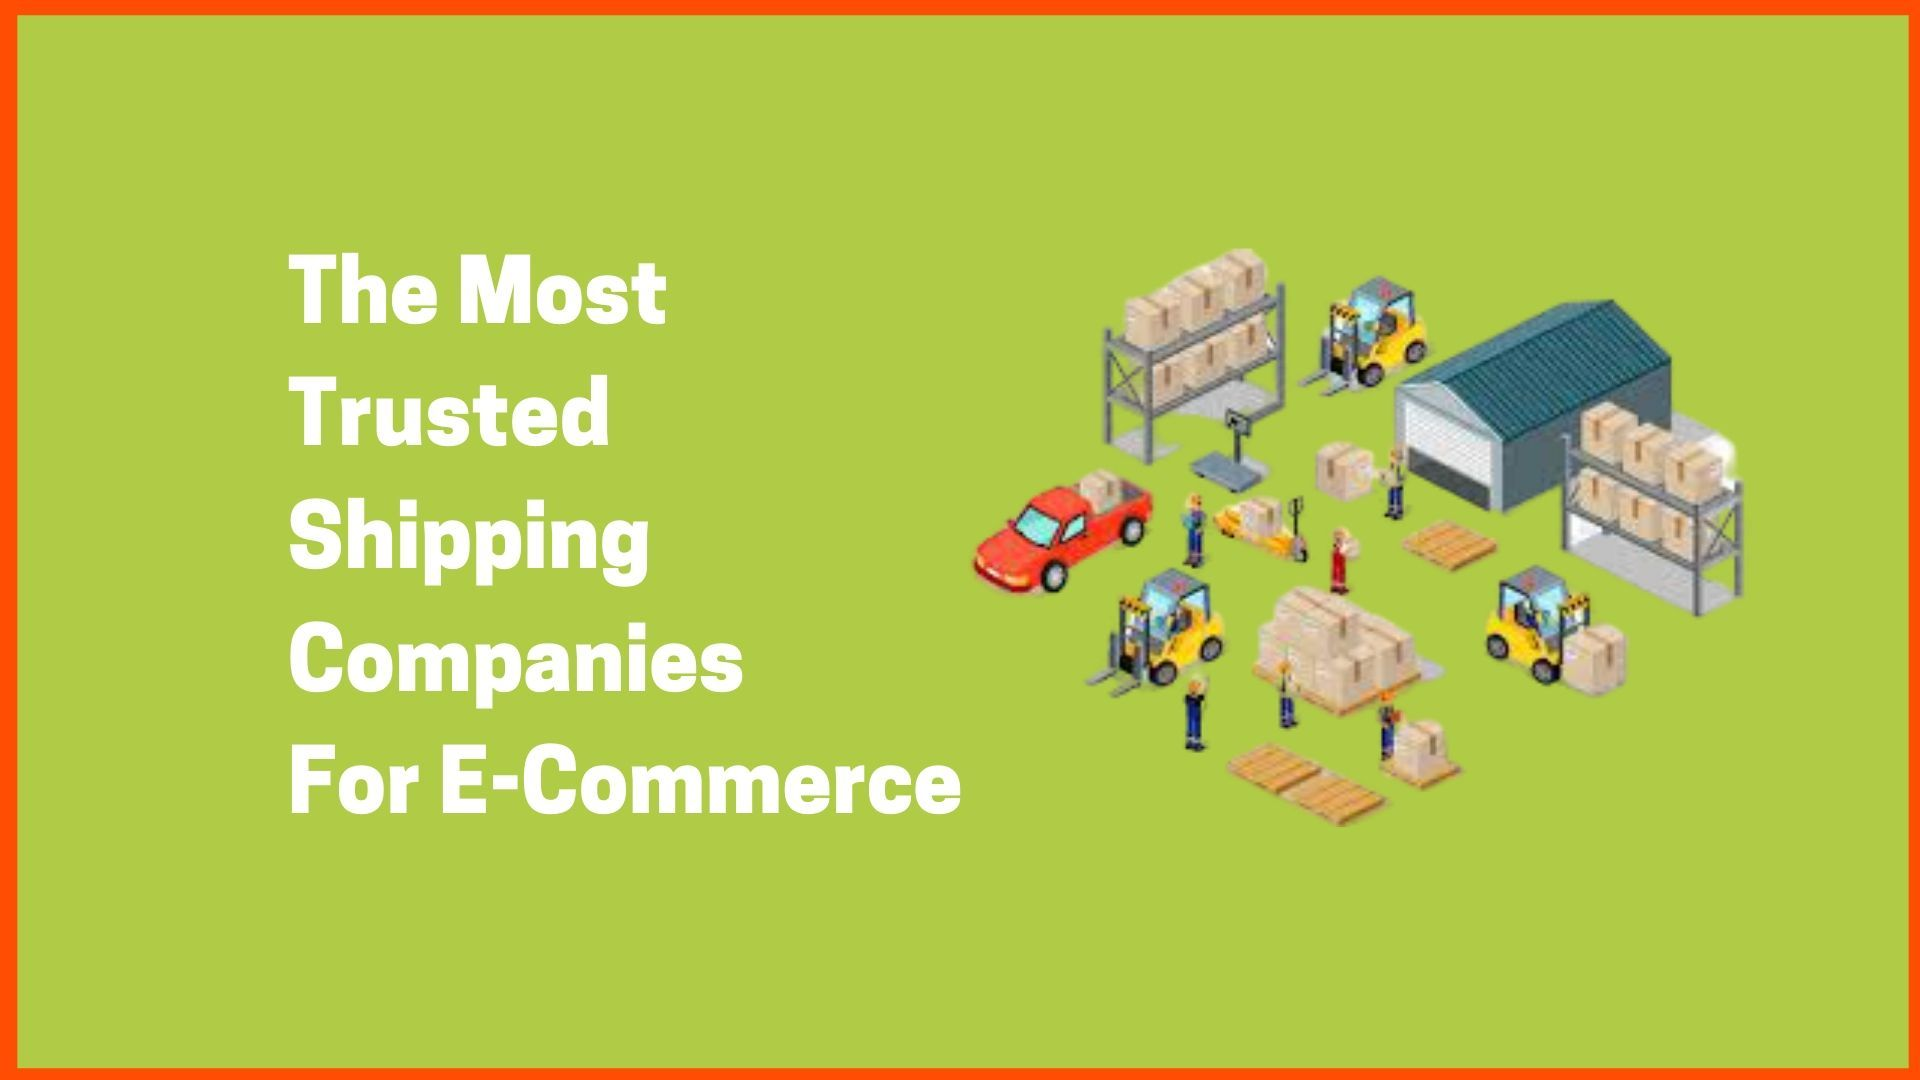 The Most Trusted Shipping Companies For E-Commerce